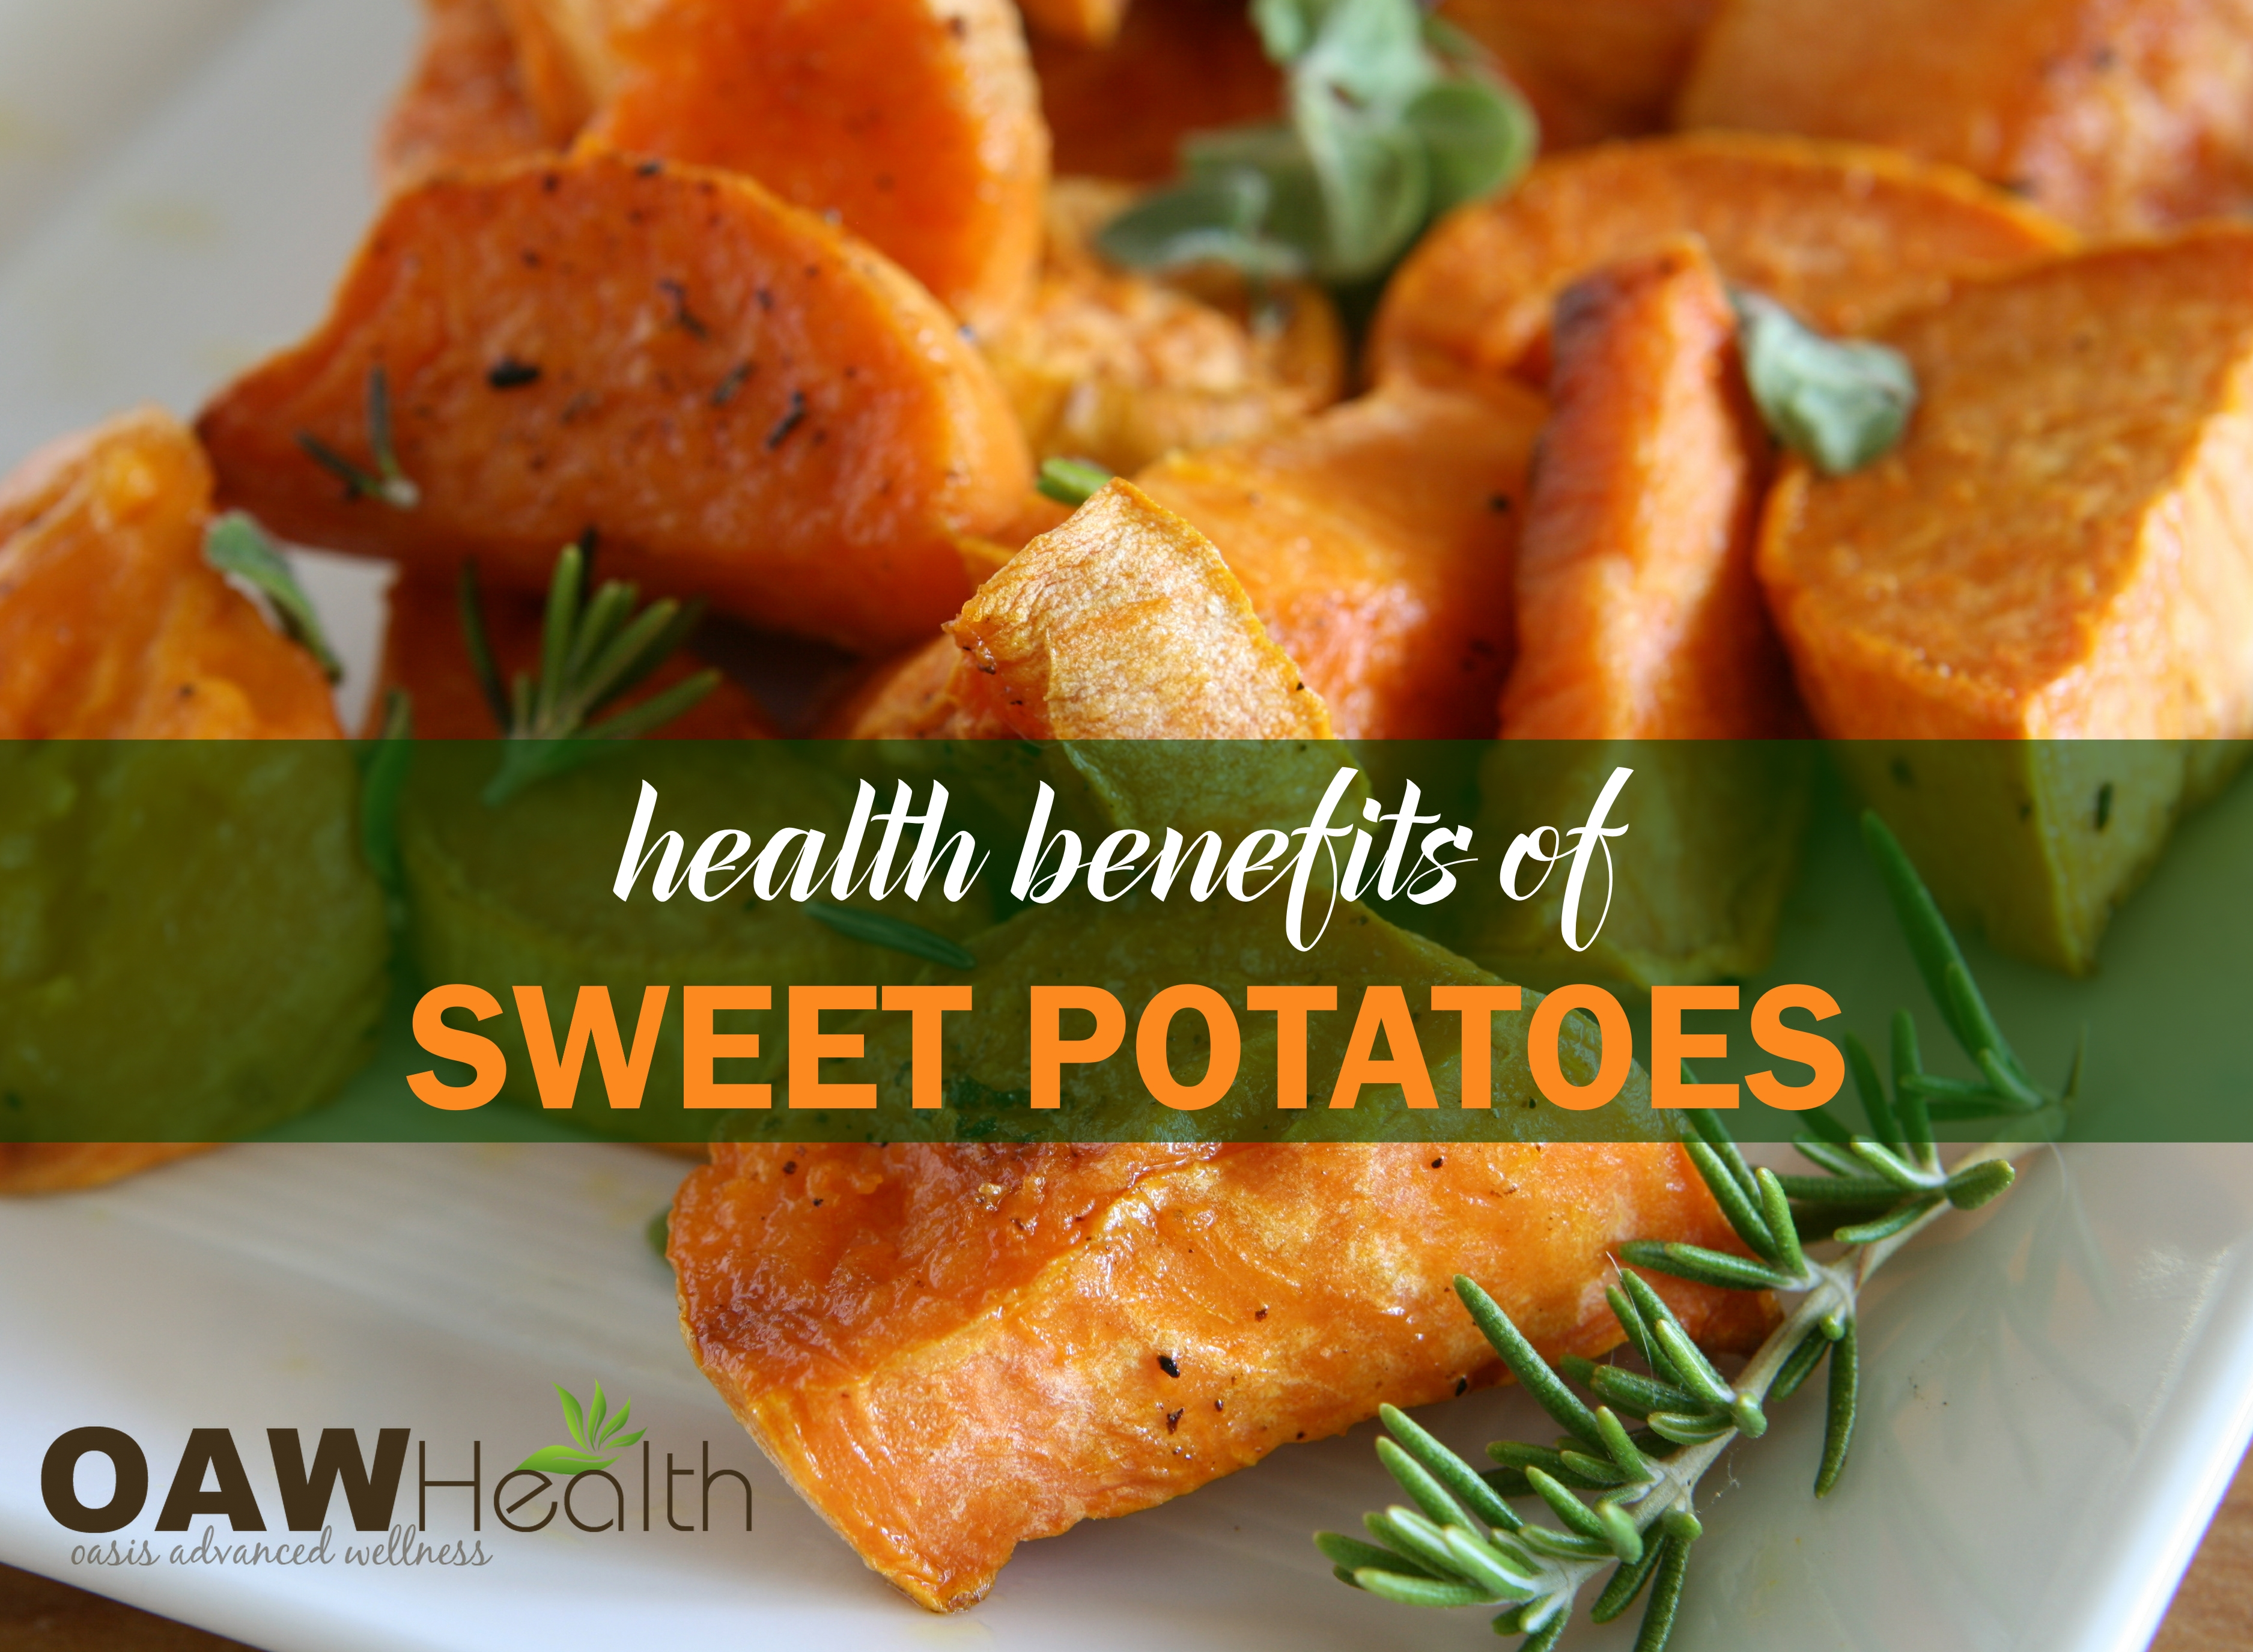 Exciting Health Benefits of Sweet Potatoes